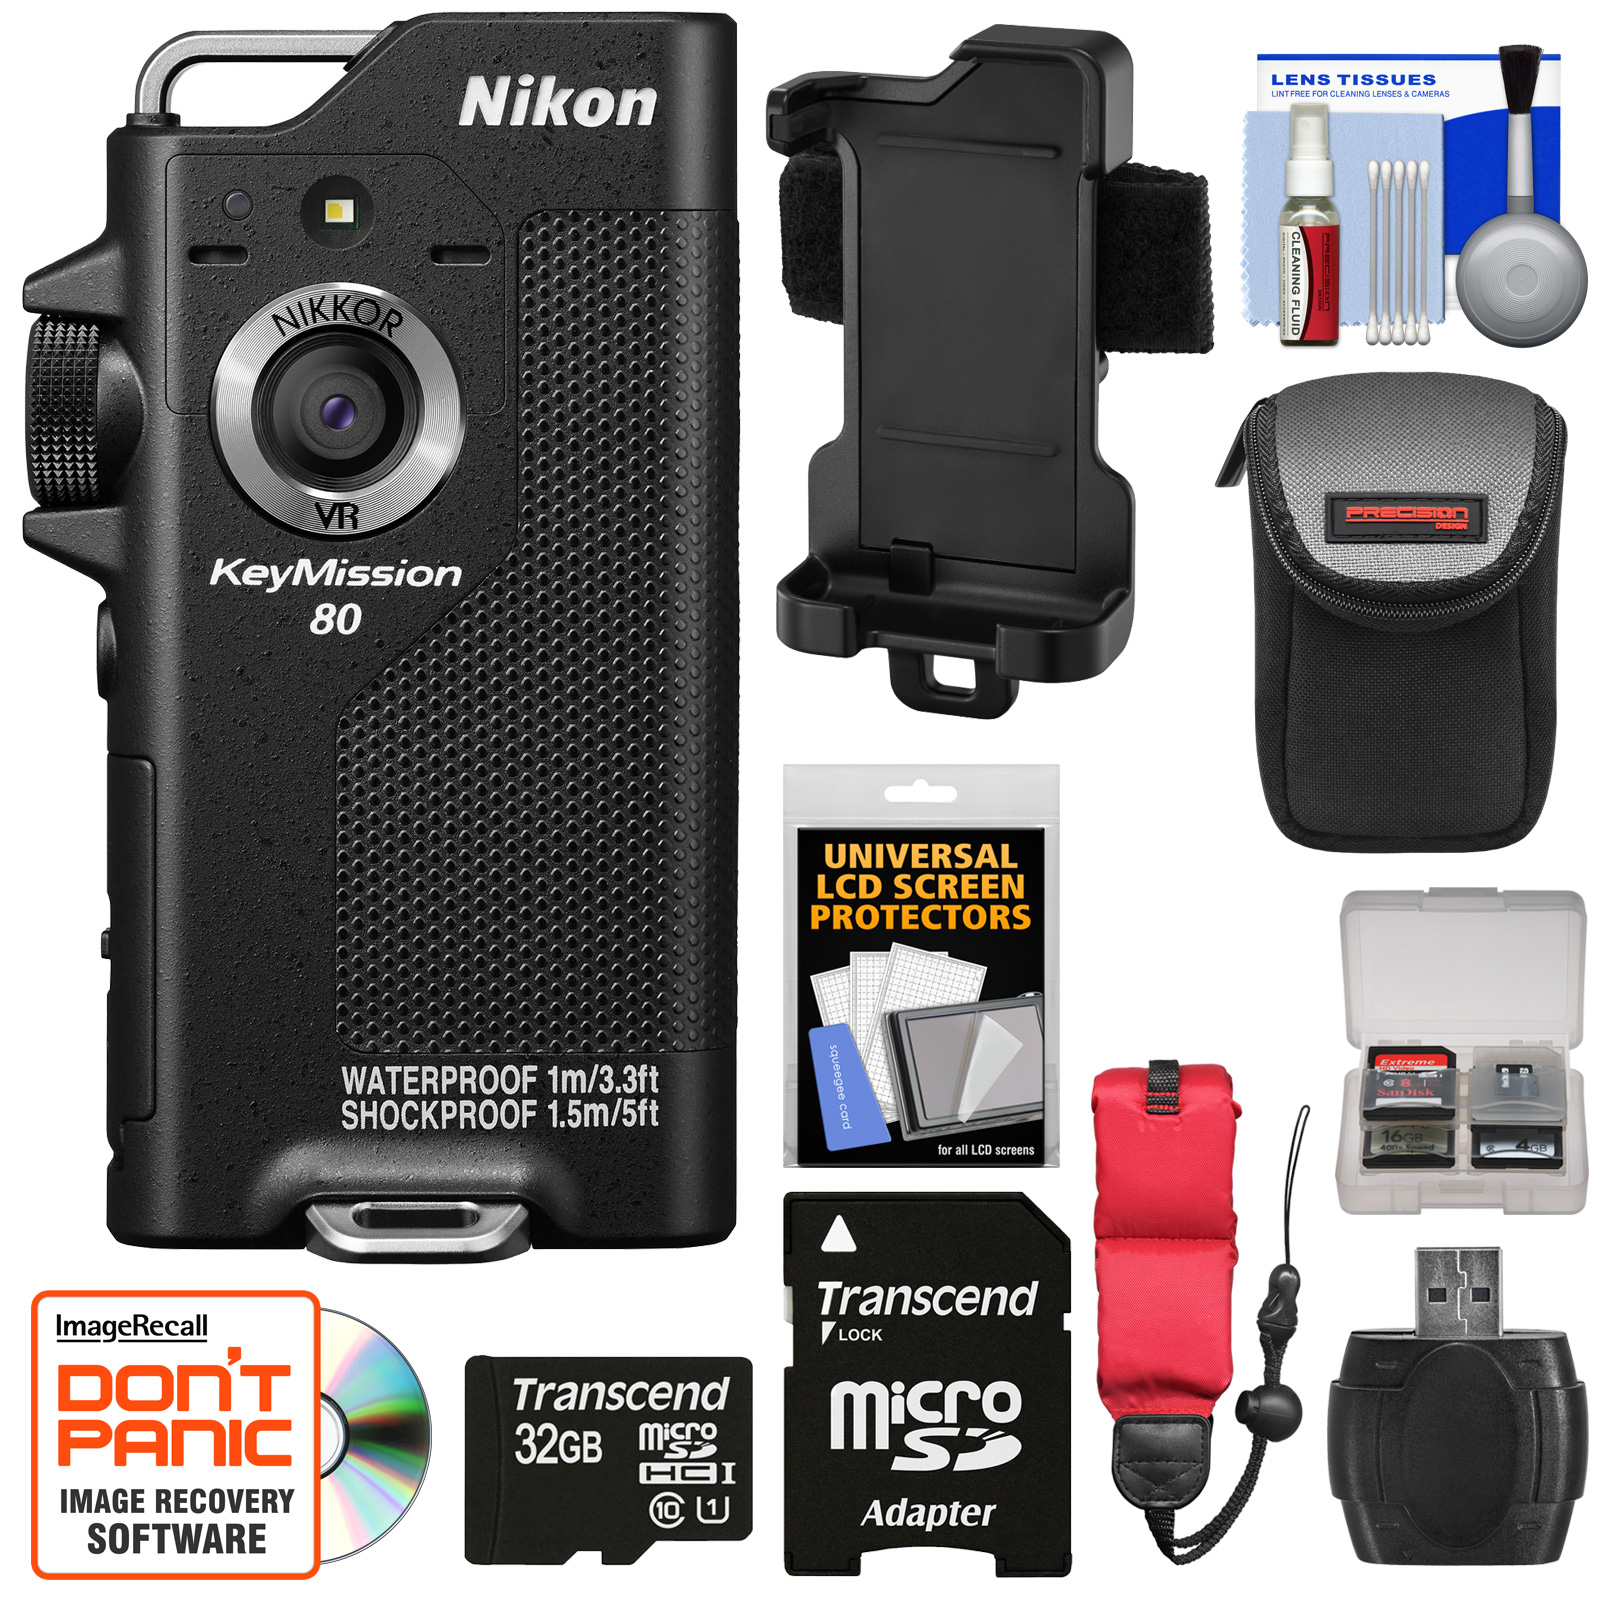 Nikon KeyMission 80 Wi-Fi Shock & Waterproof Digital Came...